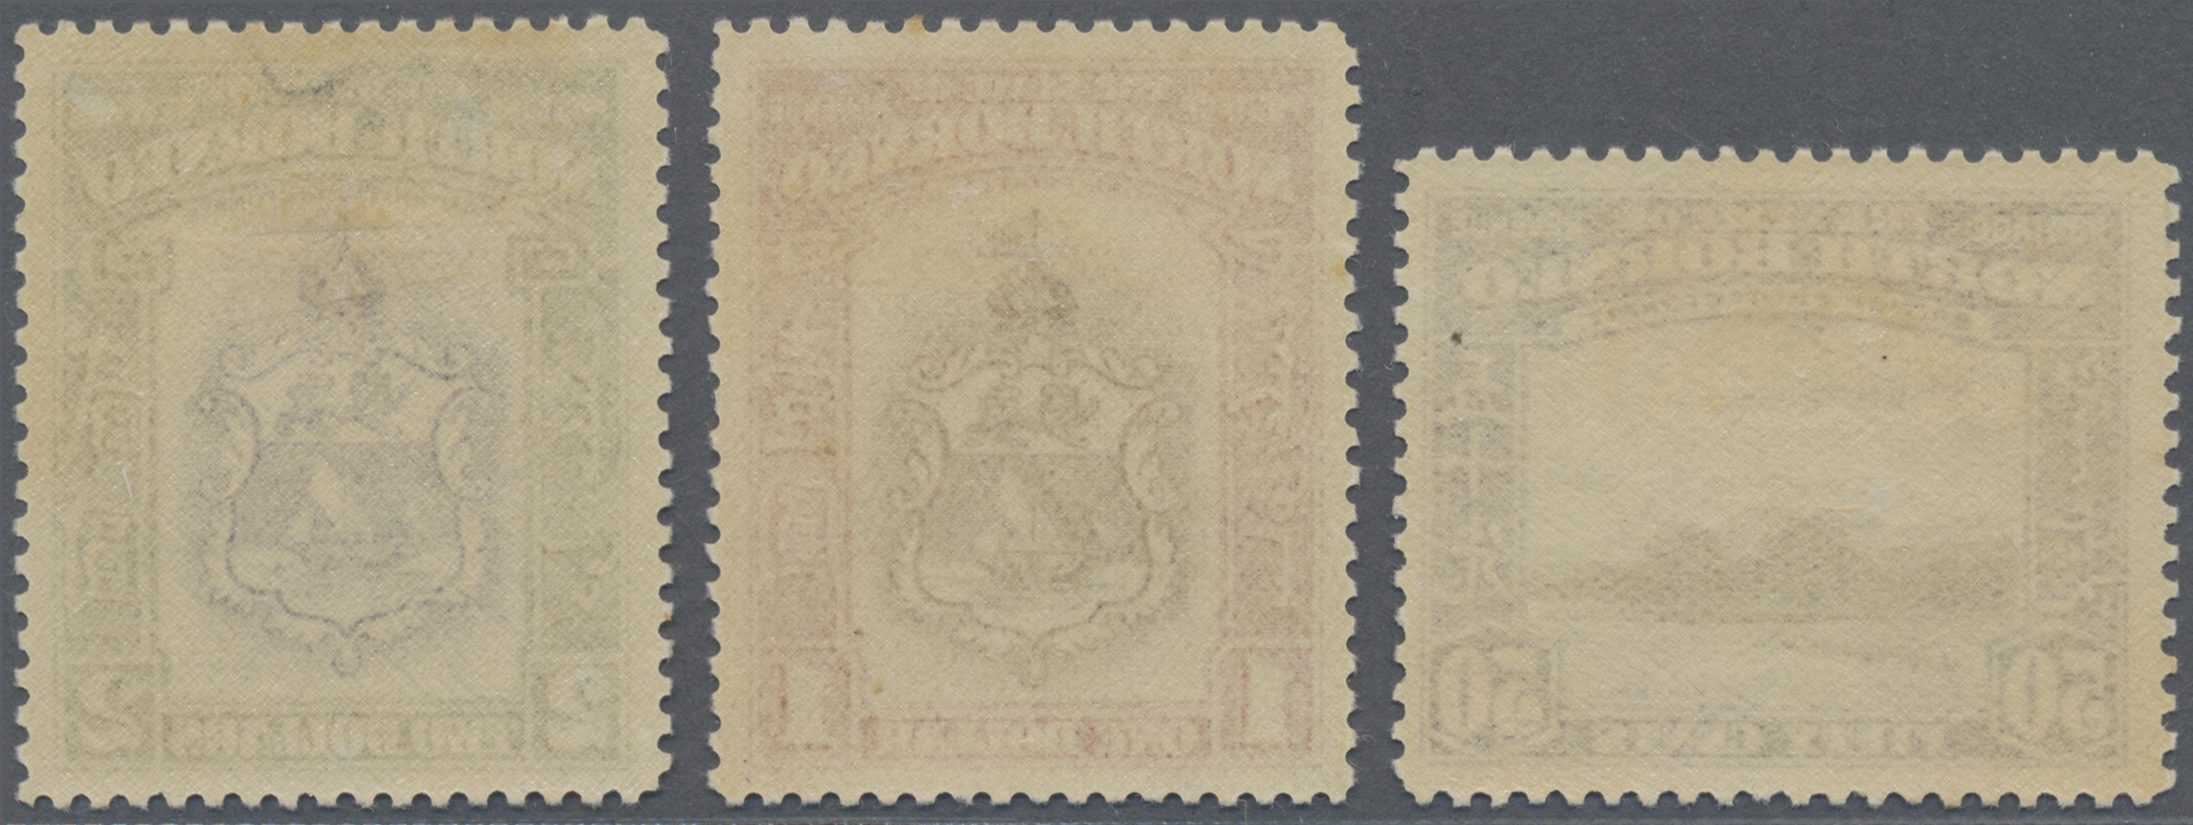 Lot 06400 - nordborneo  -  Auktionshaus Christoph Gärtner GmbH & Co. KG Sale #49 Single lots Asia, Thematics, Oversea, Europe, Old German States, Third Reich, German Colonies and the Federal Republic of Germany